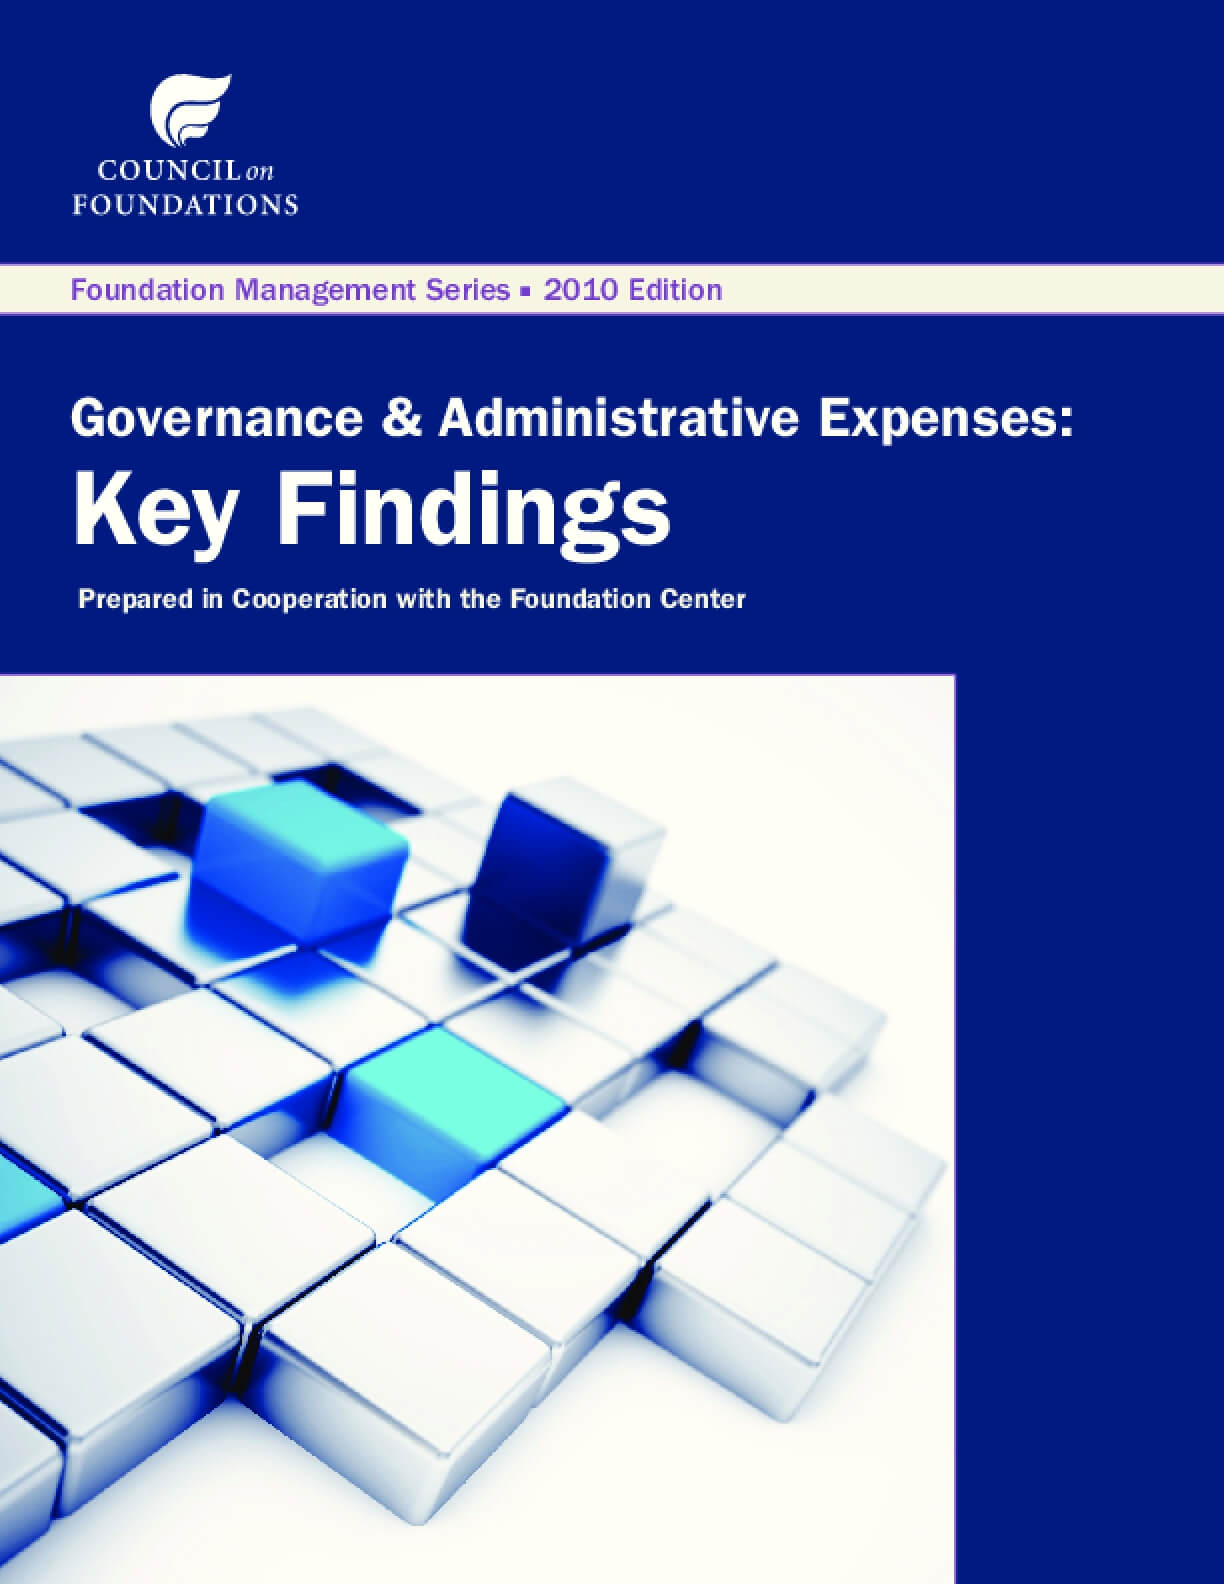 Governance & Administrative Expenses: Key Findings